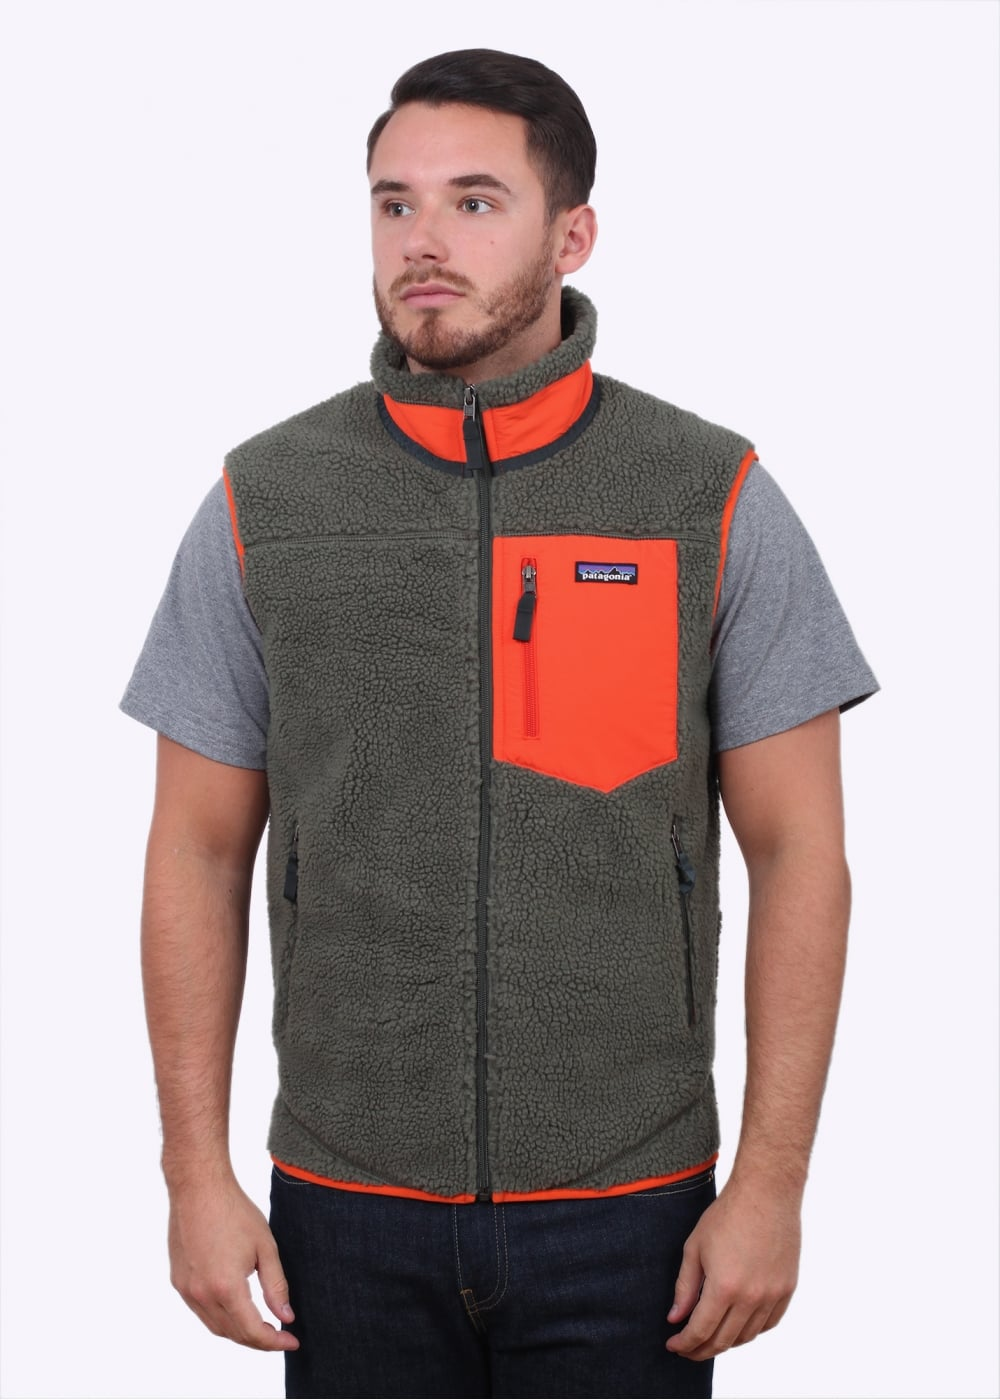 patagonia classic retro x vest industrial green gilets from